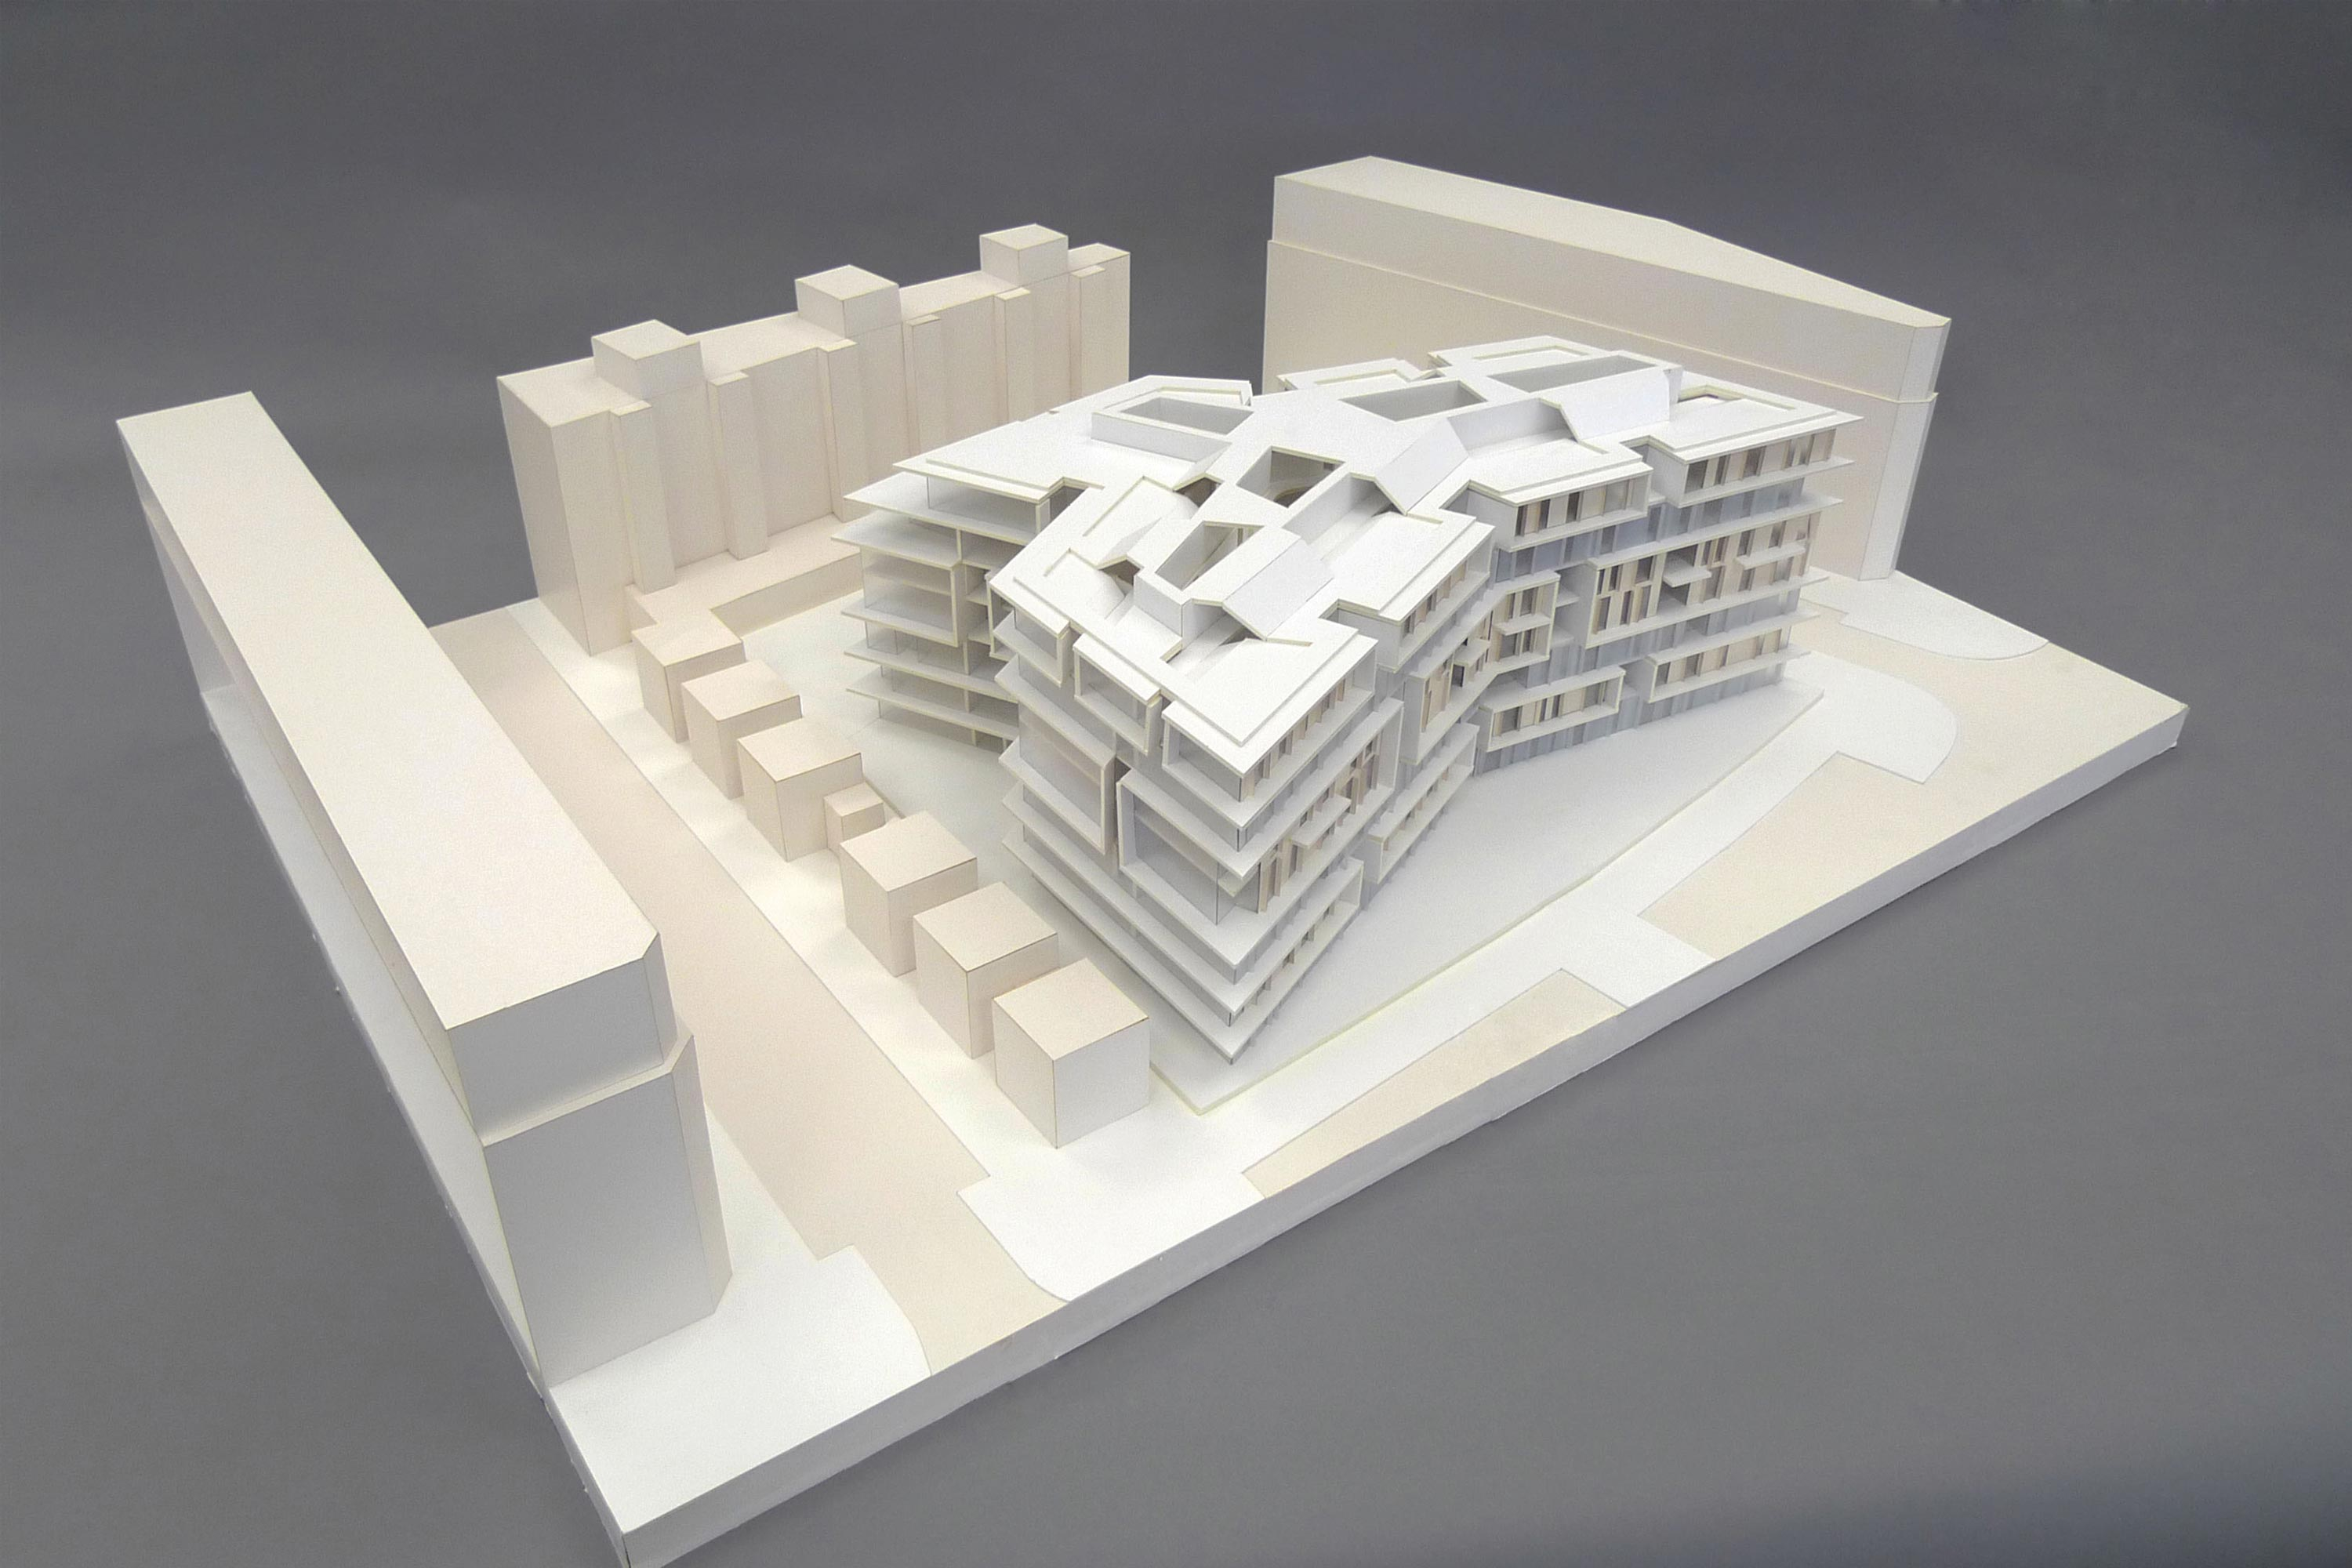 Housing Ypsilon, model. Berger+Parkkinen Architekten